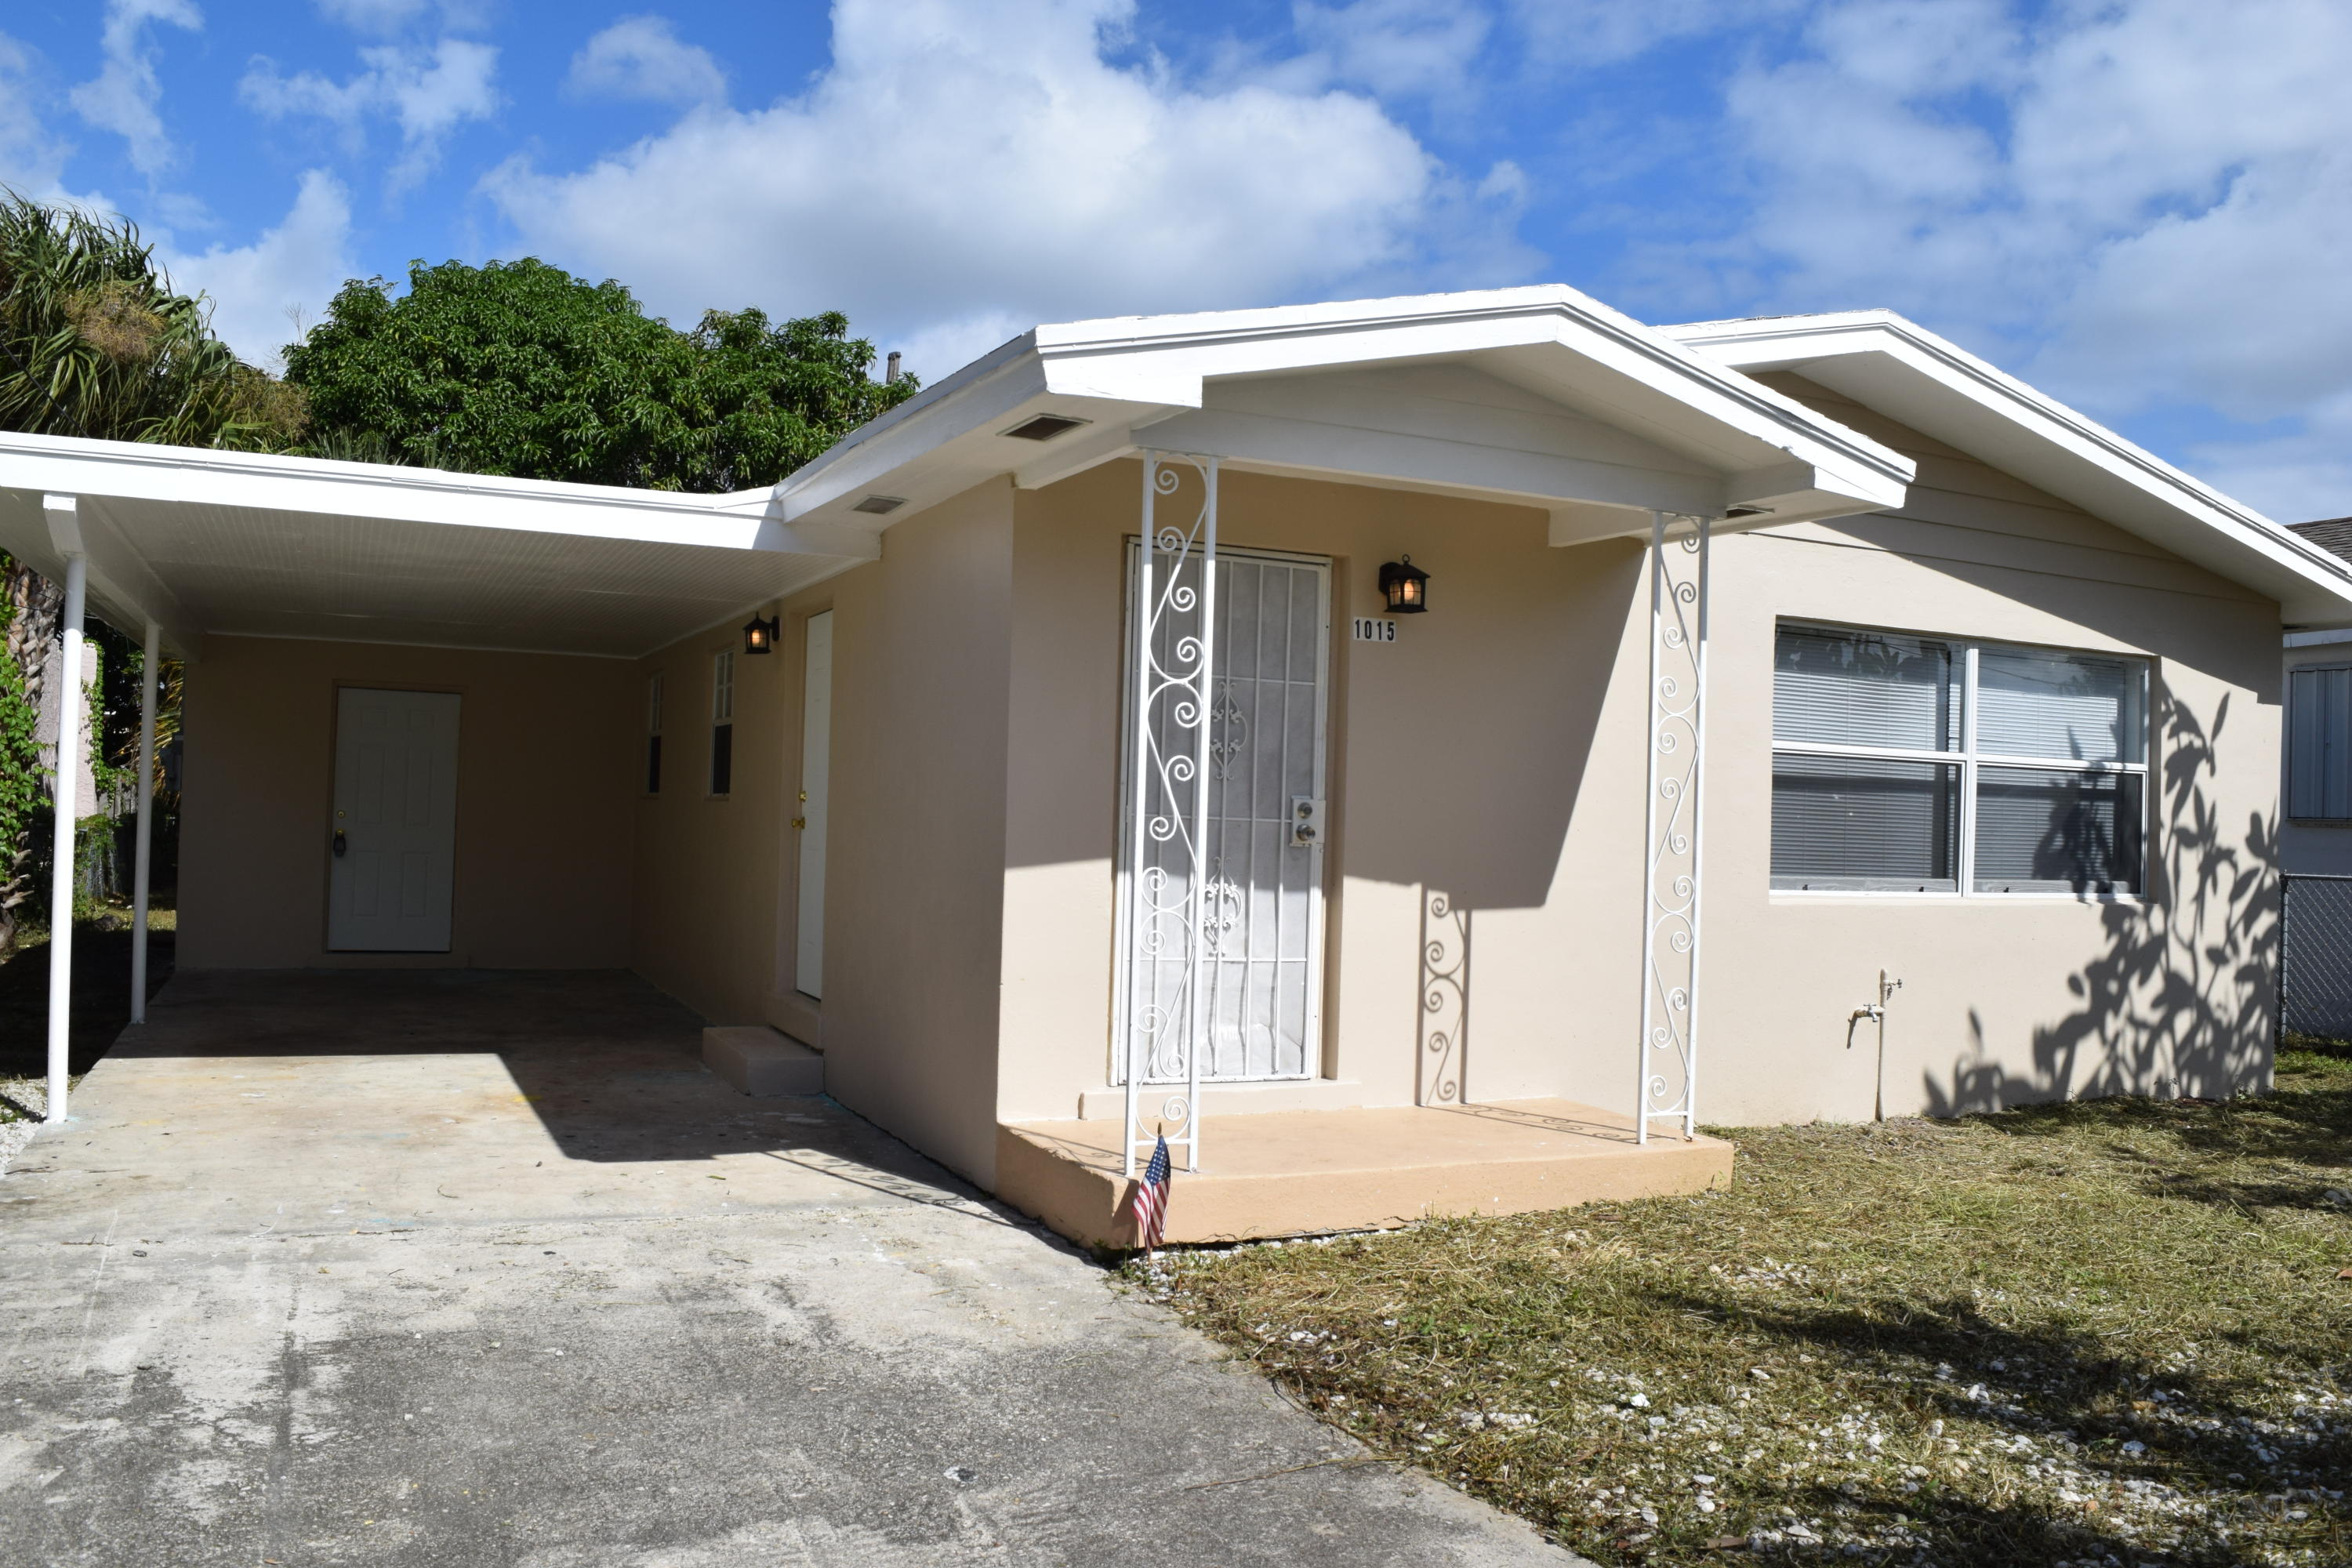 1015 14th Street, West Palm Beach, Florida 33401, 3 Bedrooms Bedrooms, ,1 BathroomBathrooms,Residential,for Rent,14th,RX-10587830, , , ,for Rent